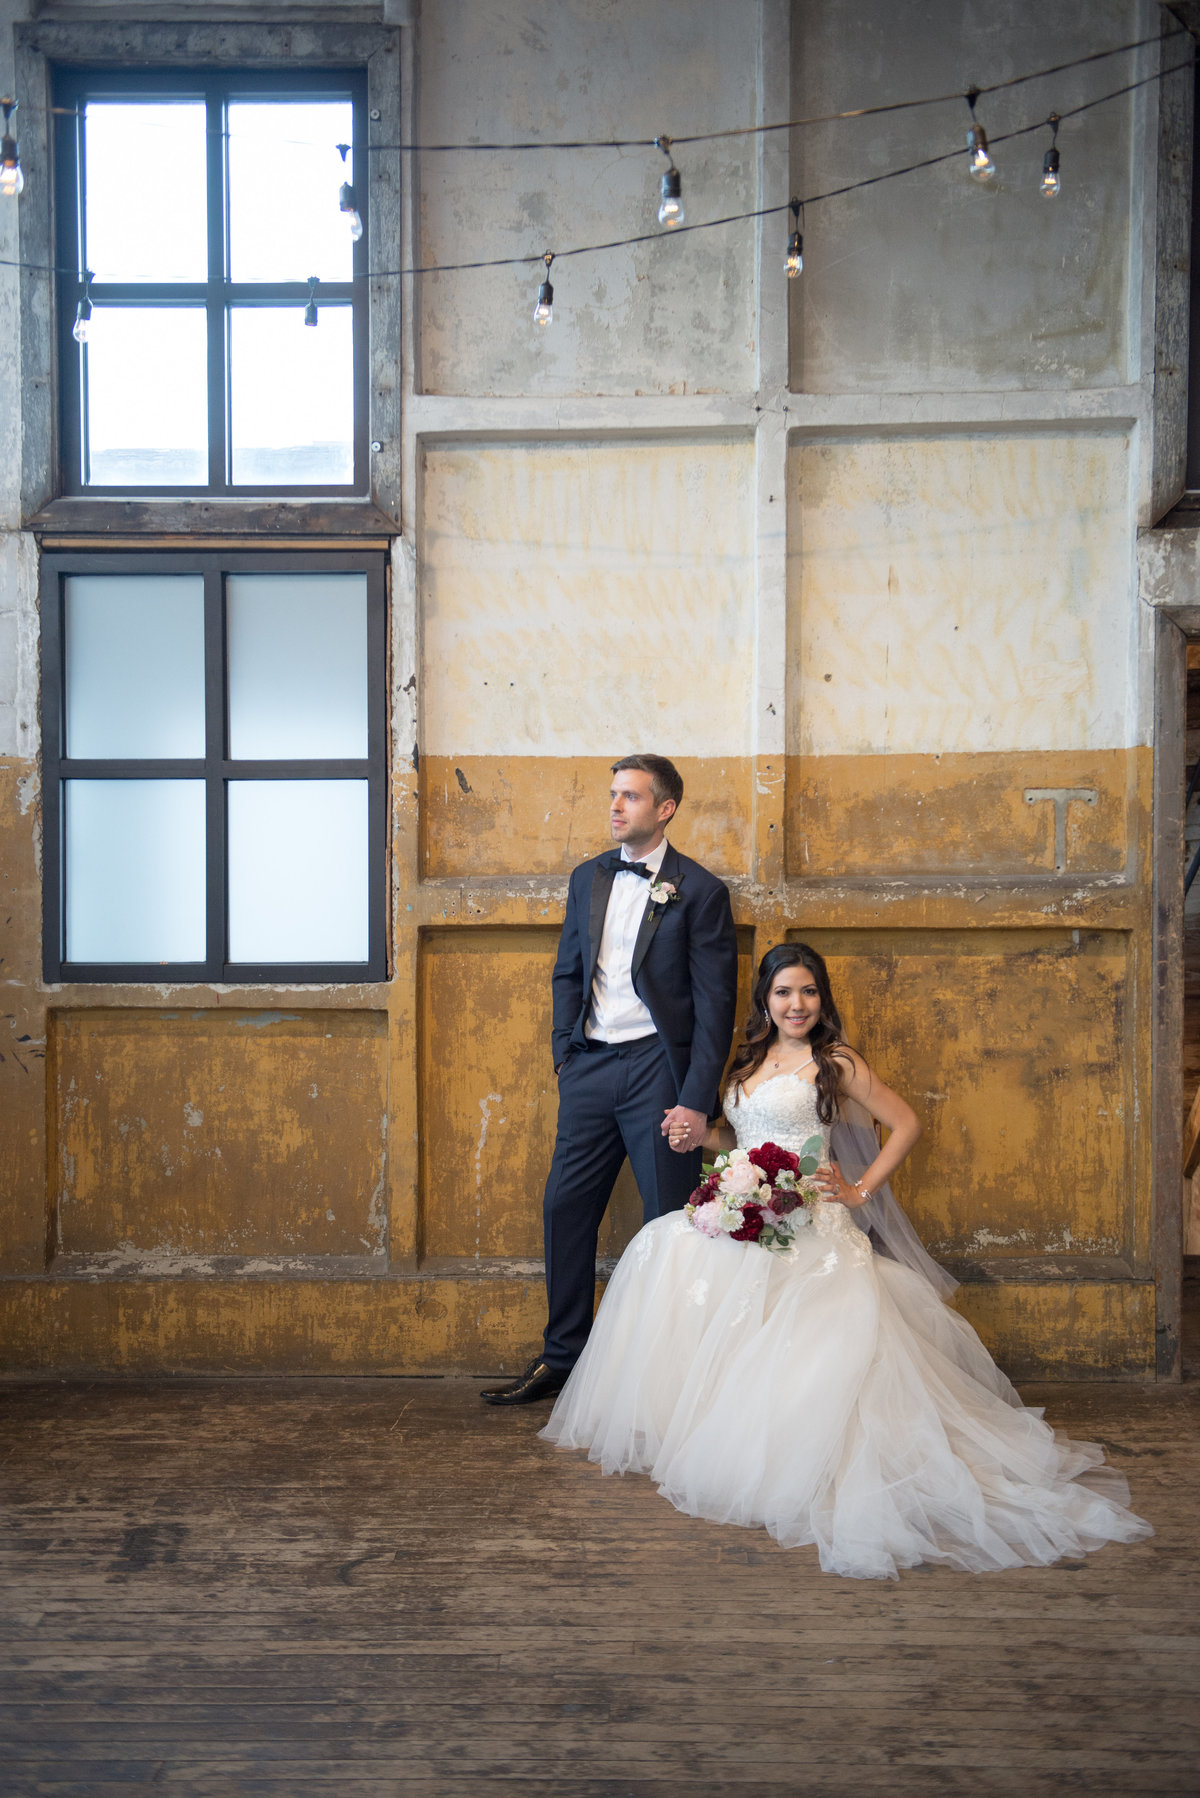 Greenpoint Loft Wedding Venue